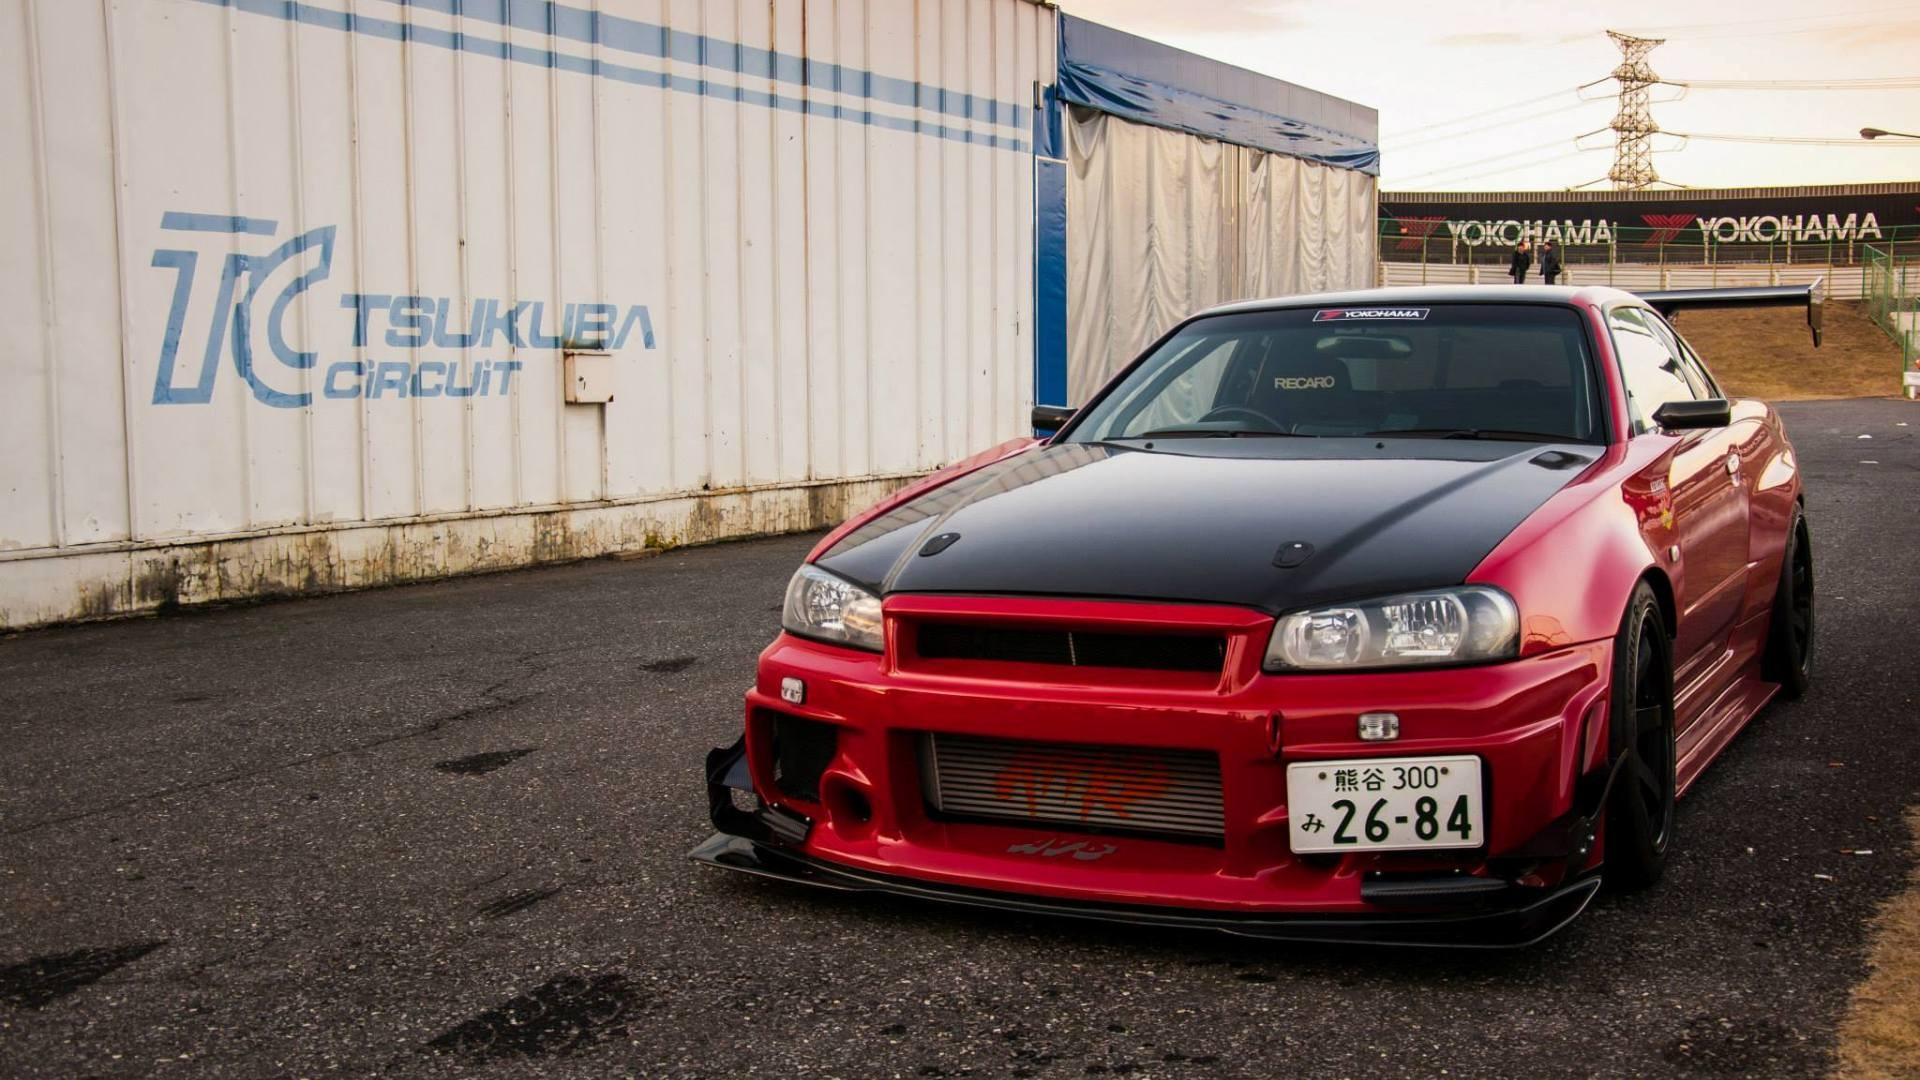 Hd Tune Up Cars Wallpaper Nissan Skyline Gt R R34 Nissan Skyline Nissan Jdm Car